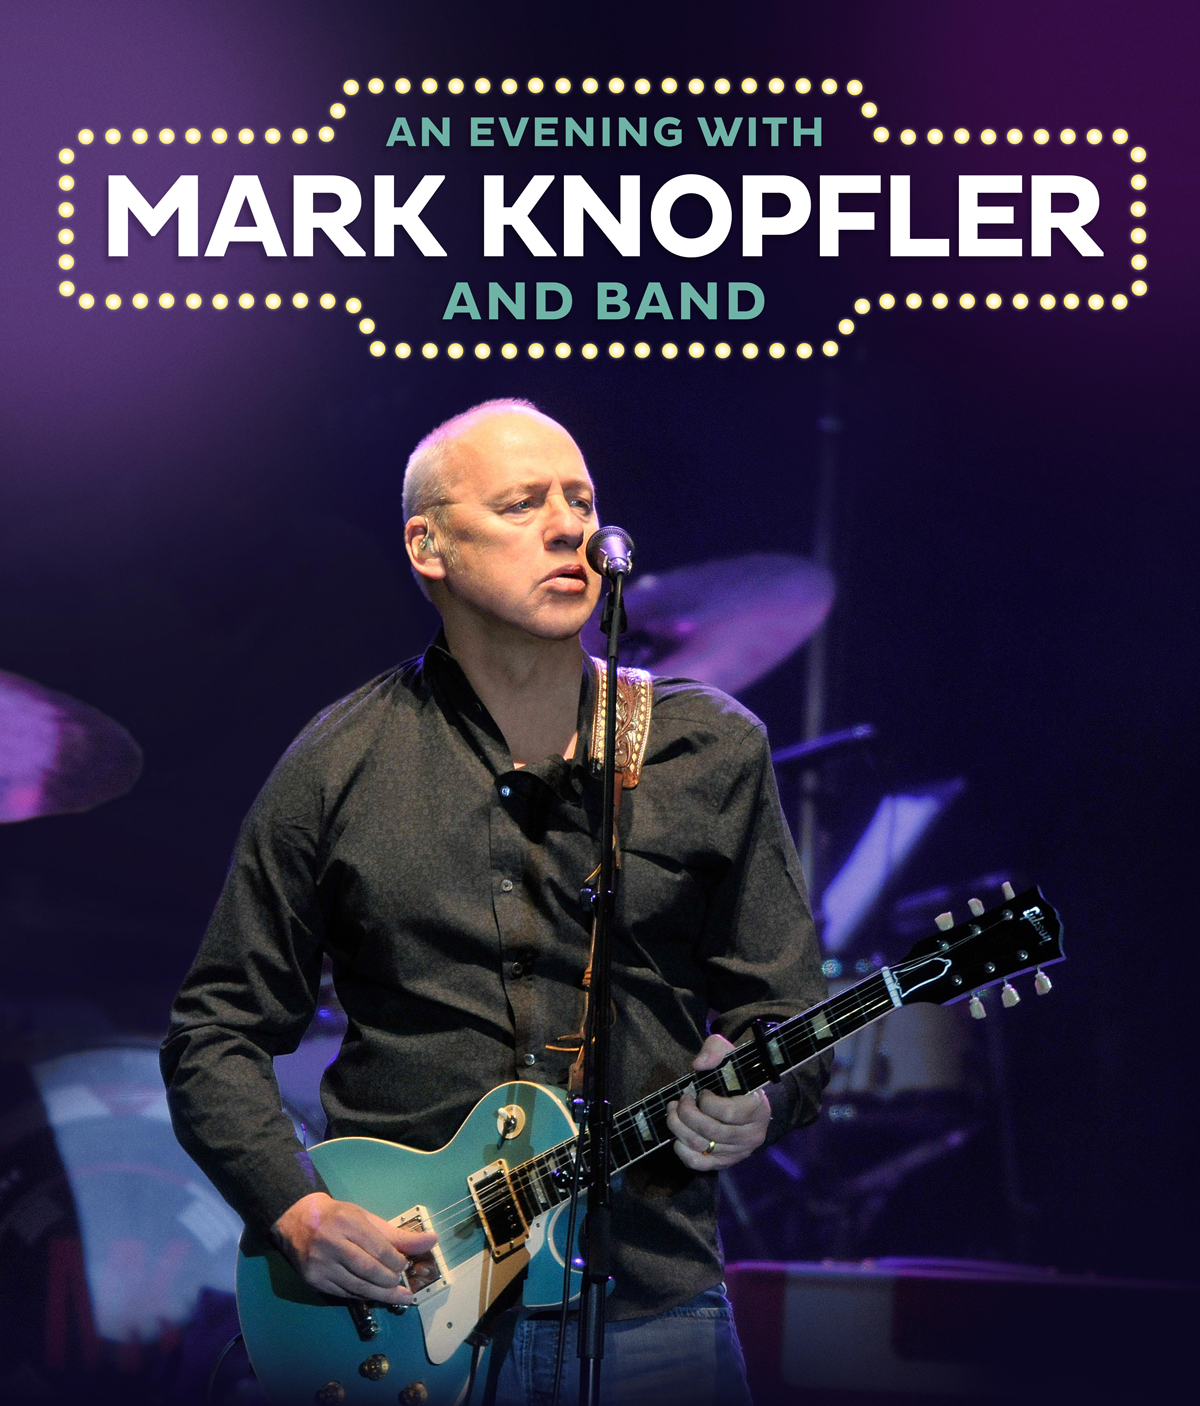 70s at 7 – Win Tickets to an Evening with Mark Knopfler and Band